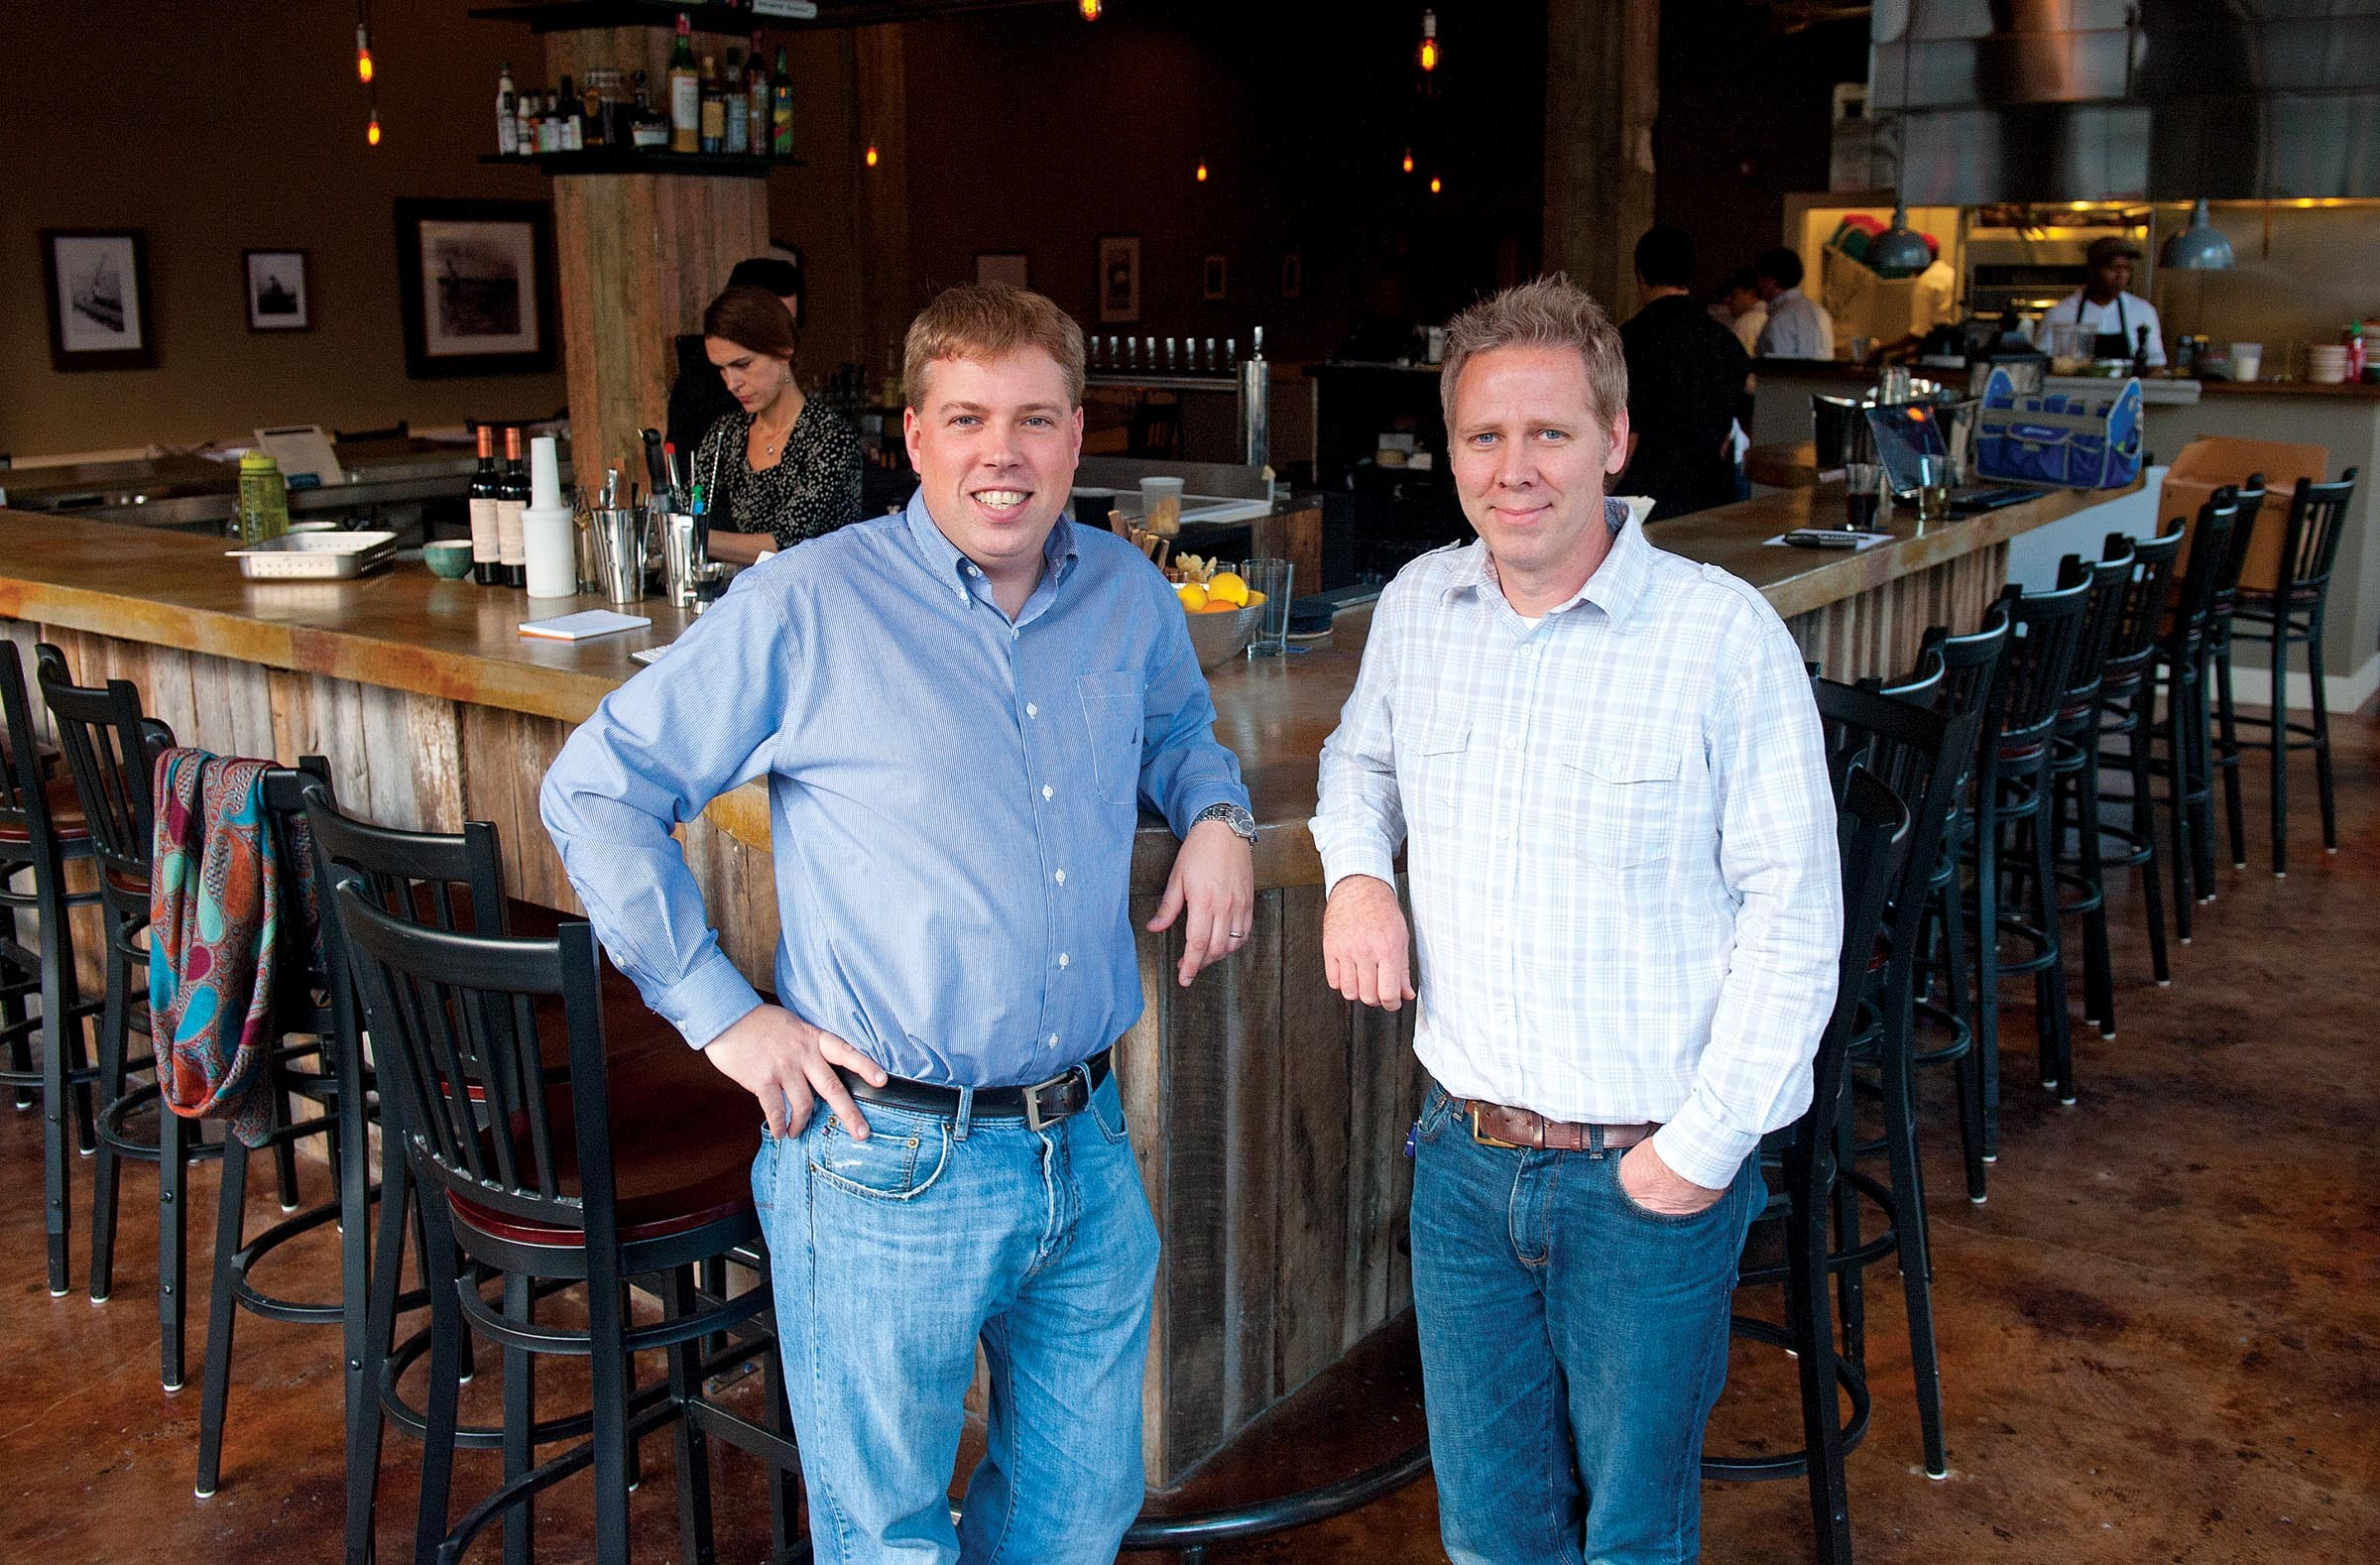 Travis and Ryan Croxton opened Rappahannock this month and got an immediate series of full houses for their oyster-oriented restaurant and bar downtown. - SCOTT ELMQUIST